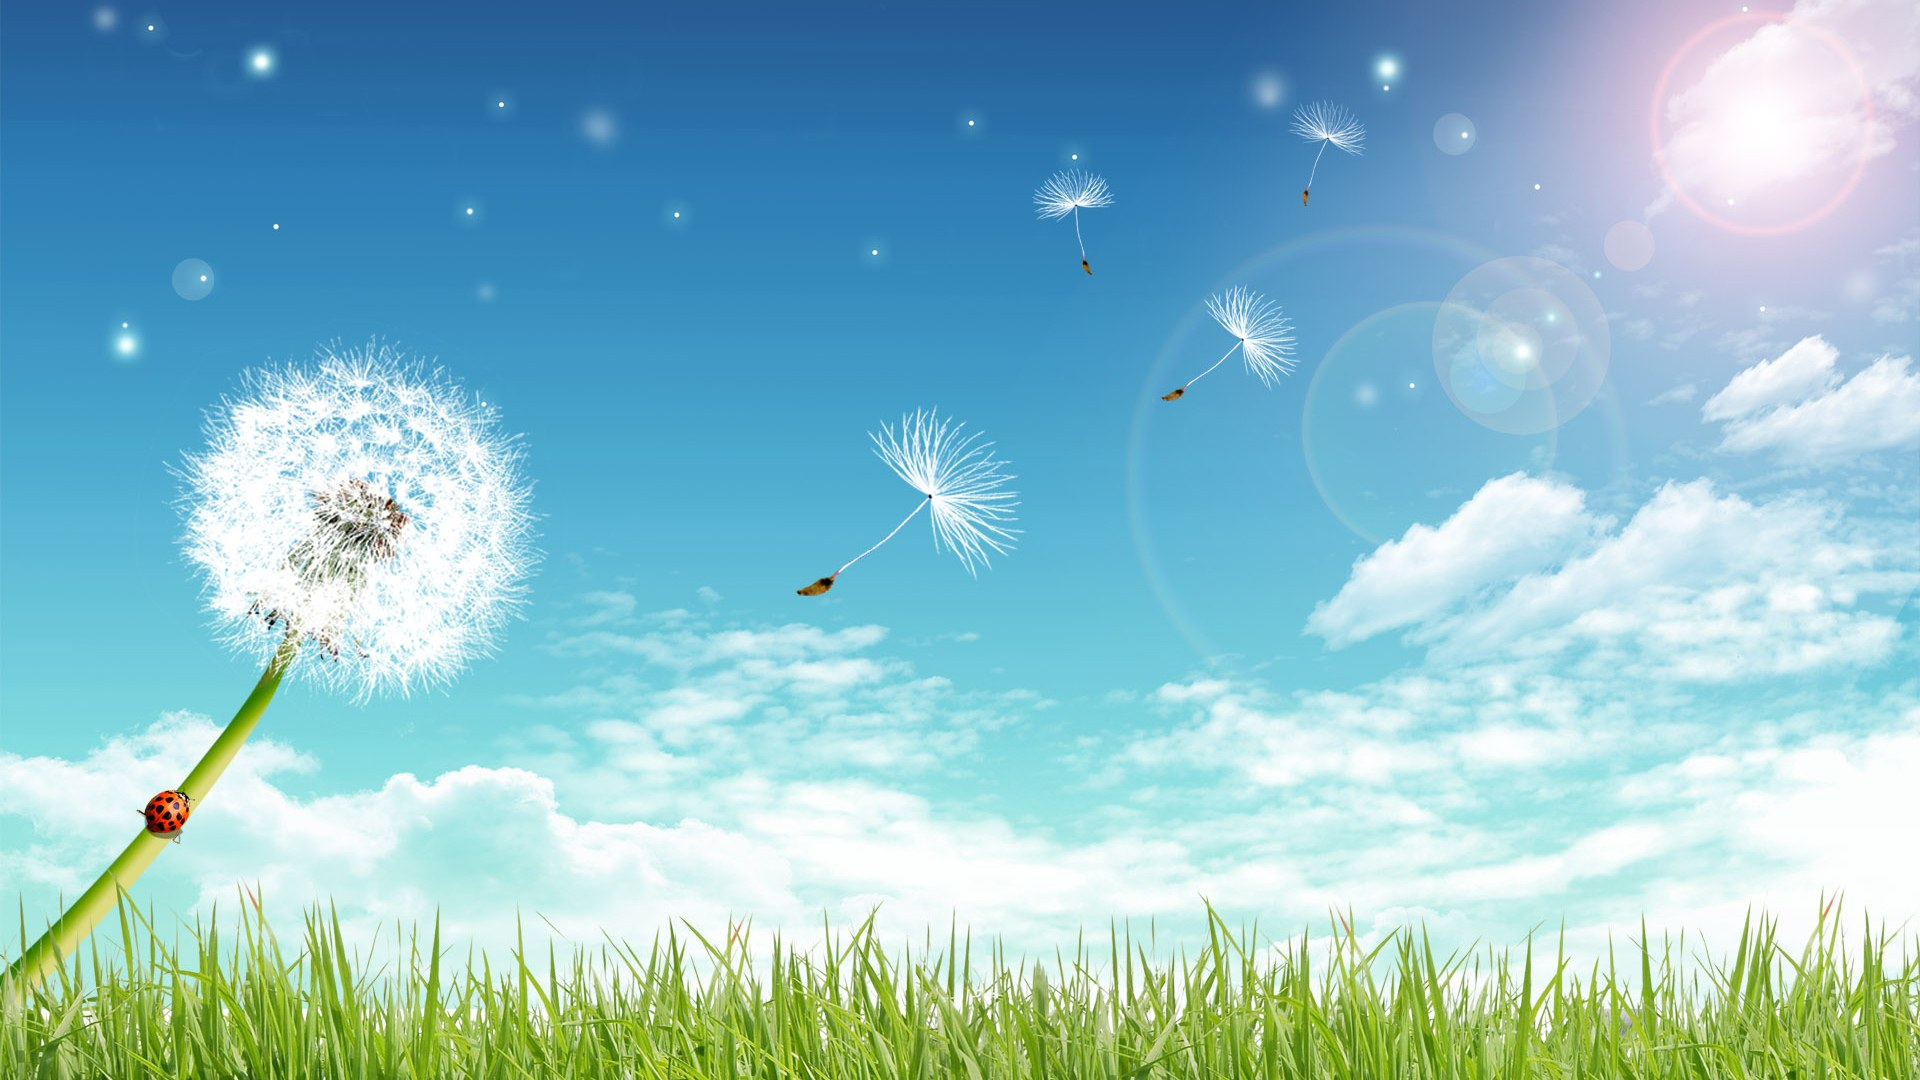 Cloud Sky Wallpaper High Definition 1920x1080